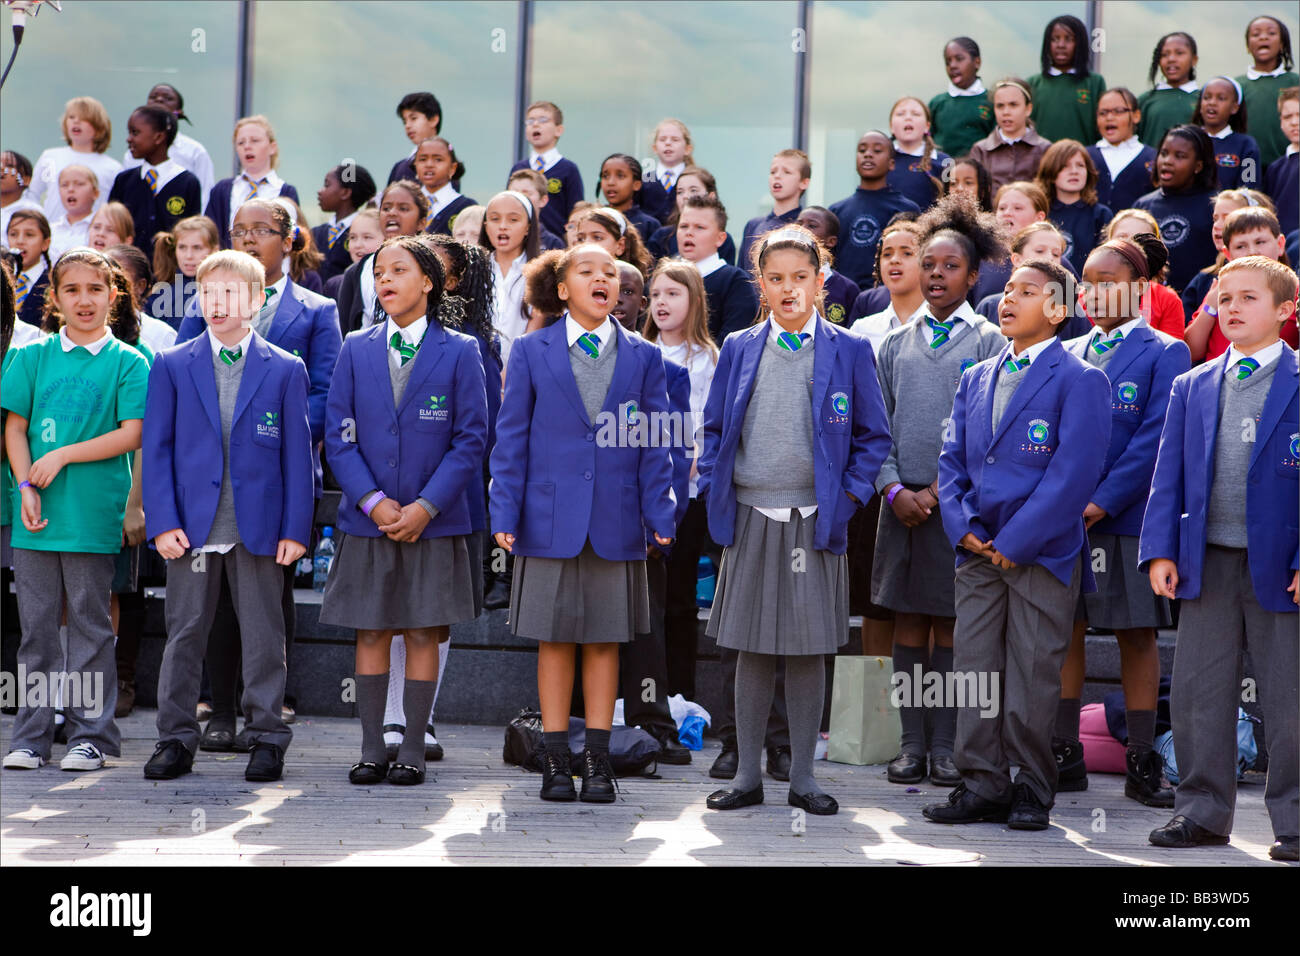 Schoolchildren singing at the Thames festival, London, UK - Stock Image